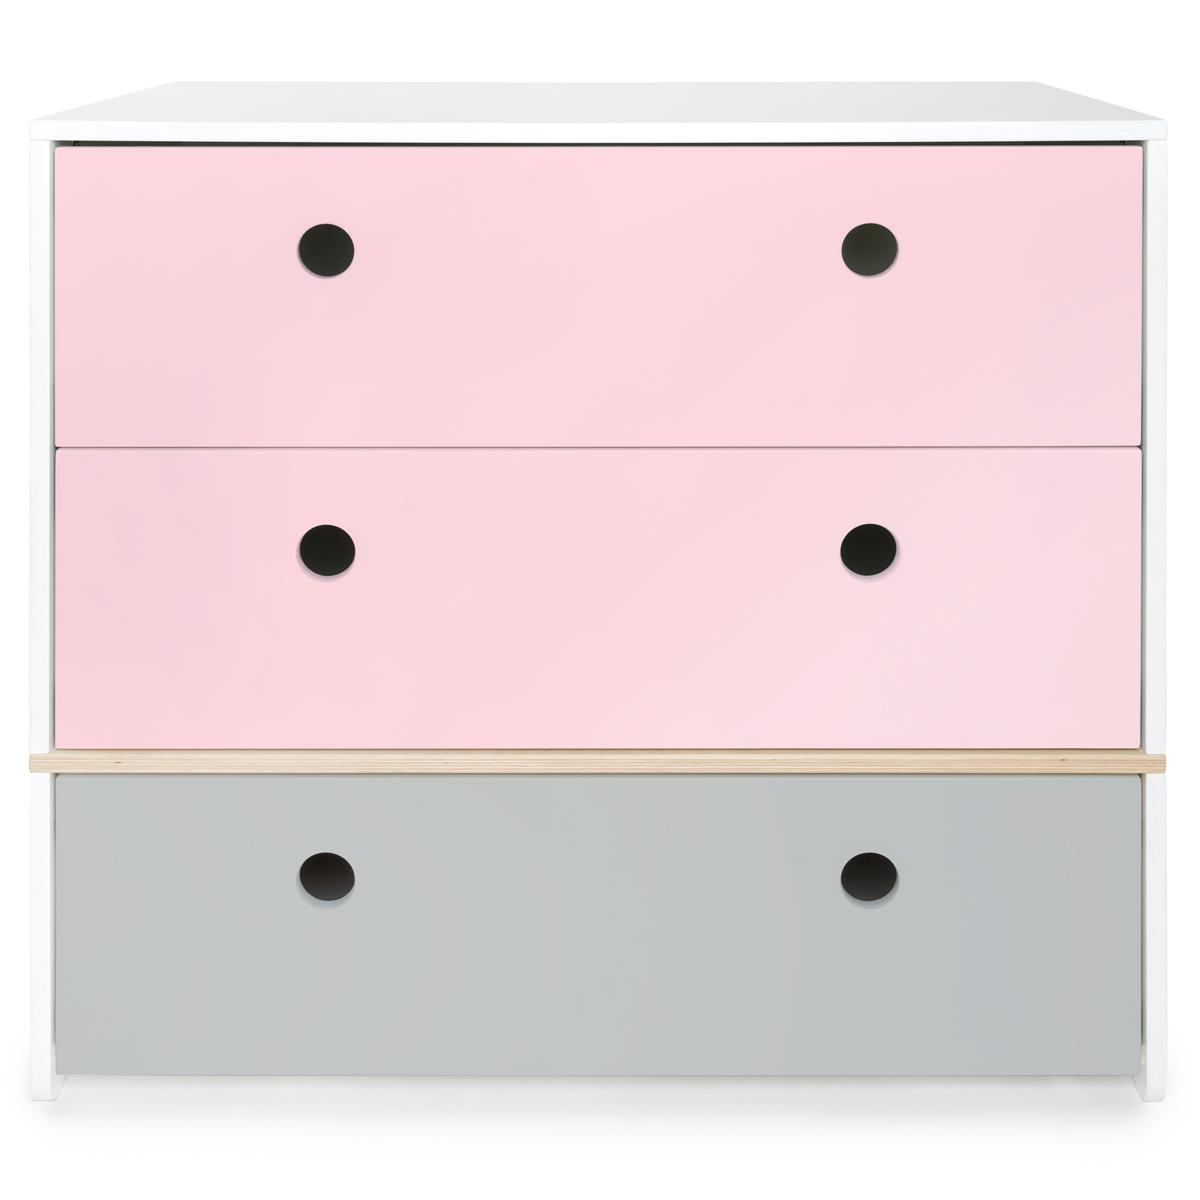 Wookids - Commode COLORFLEX s pink-p grey